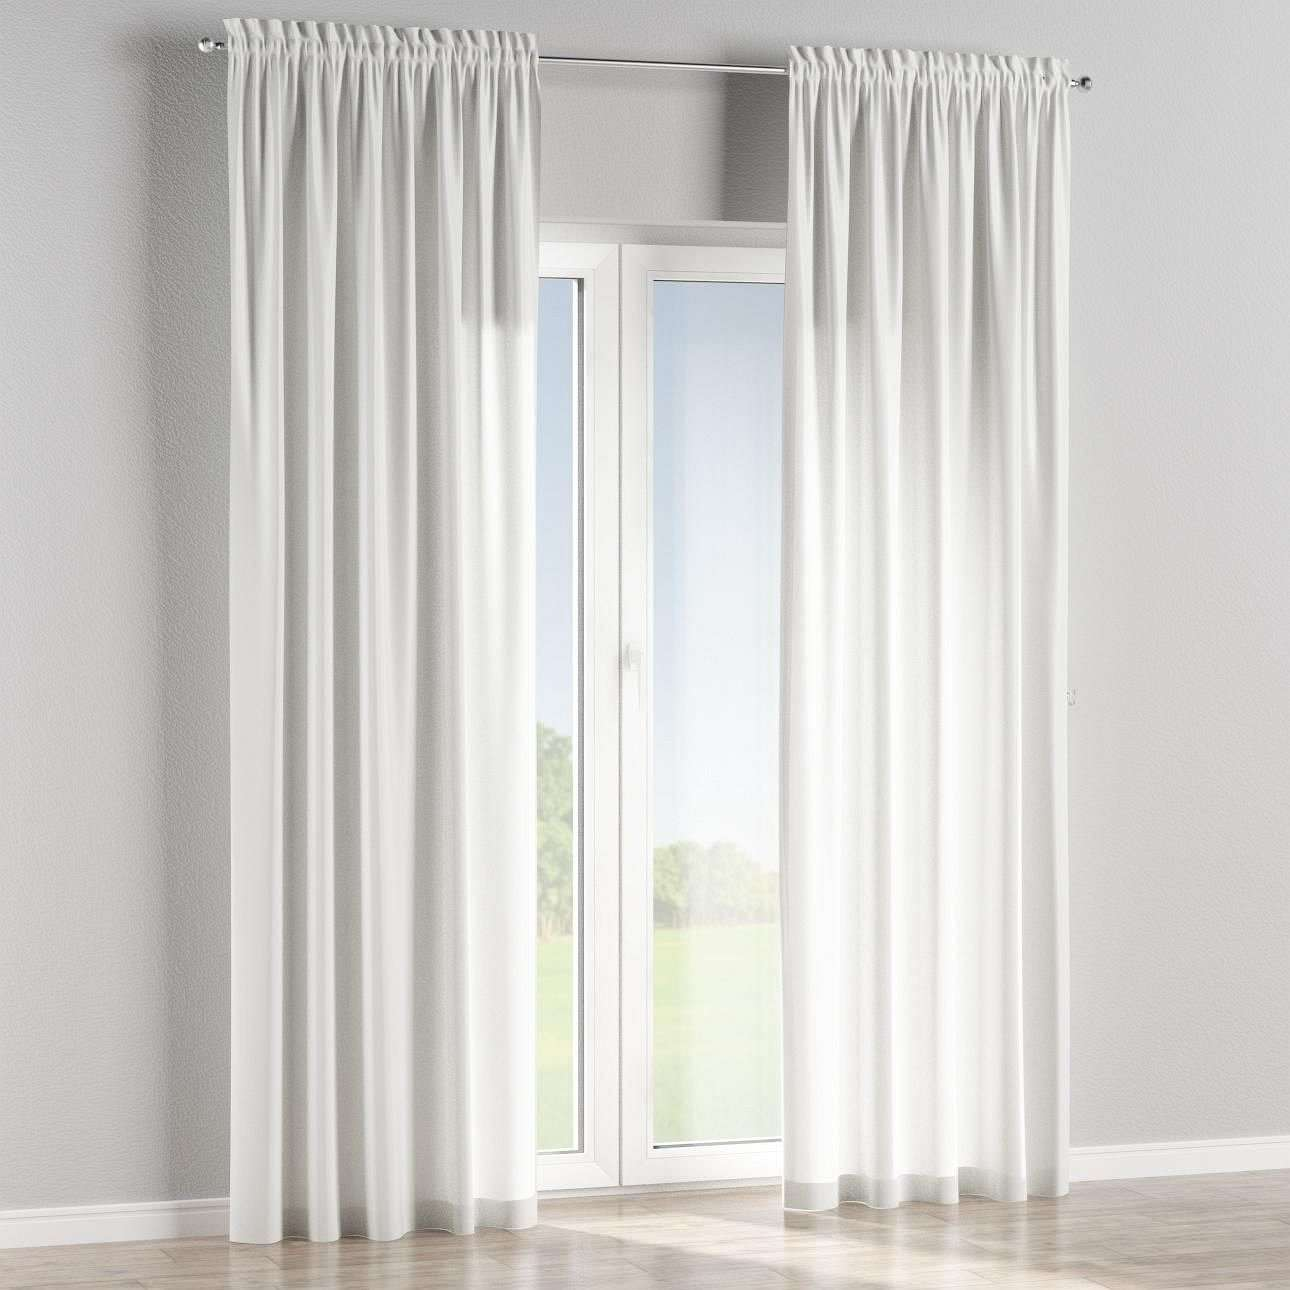 Slot and frill curtains in collection Cardiff, fabric: 136-32